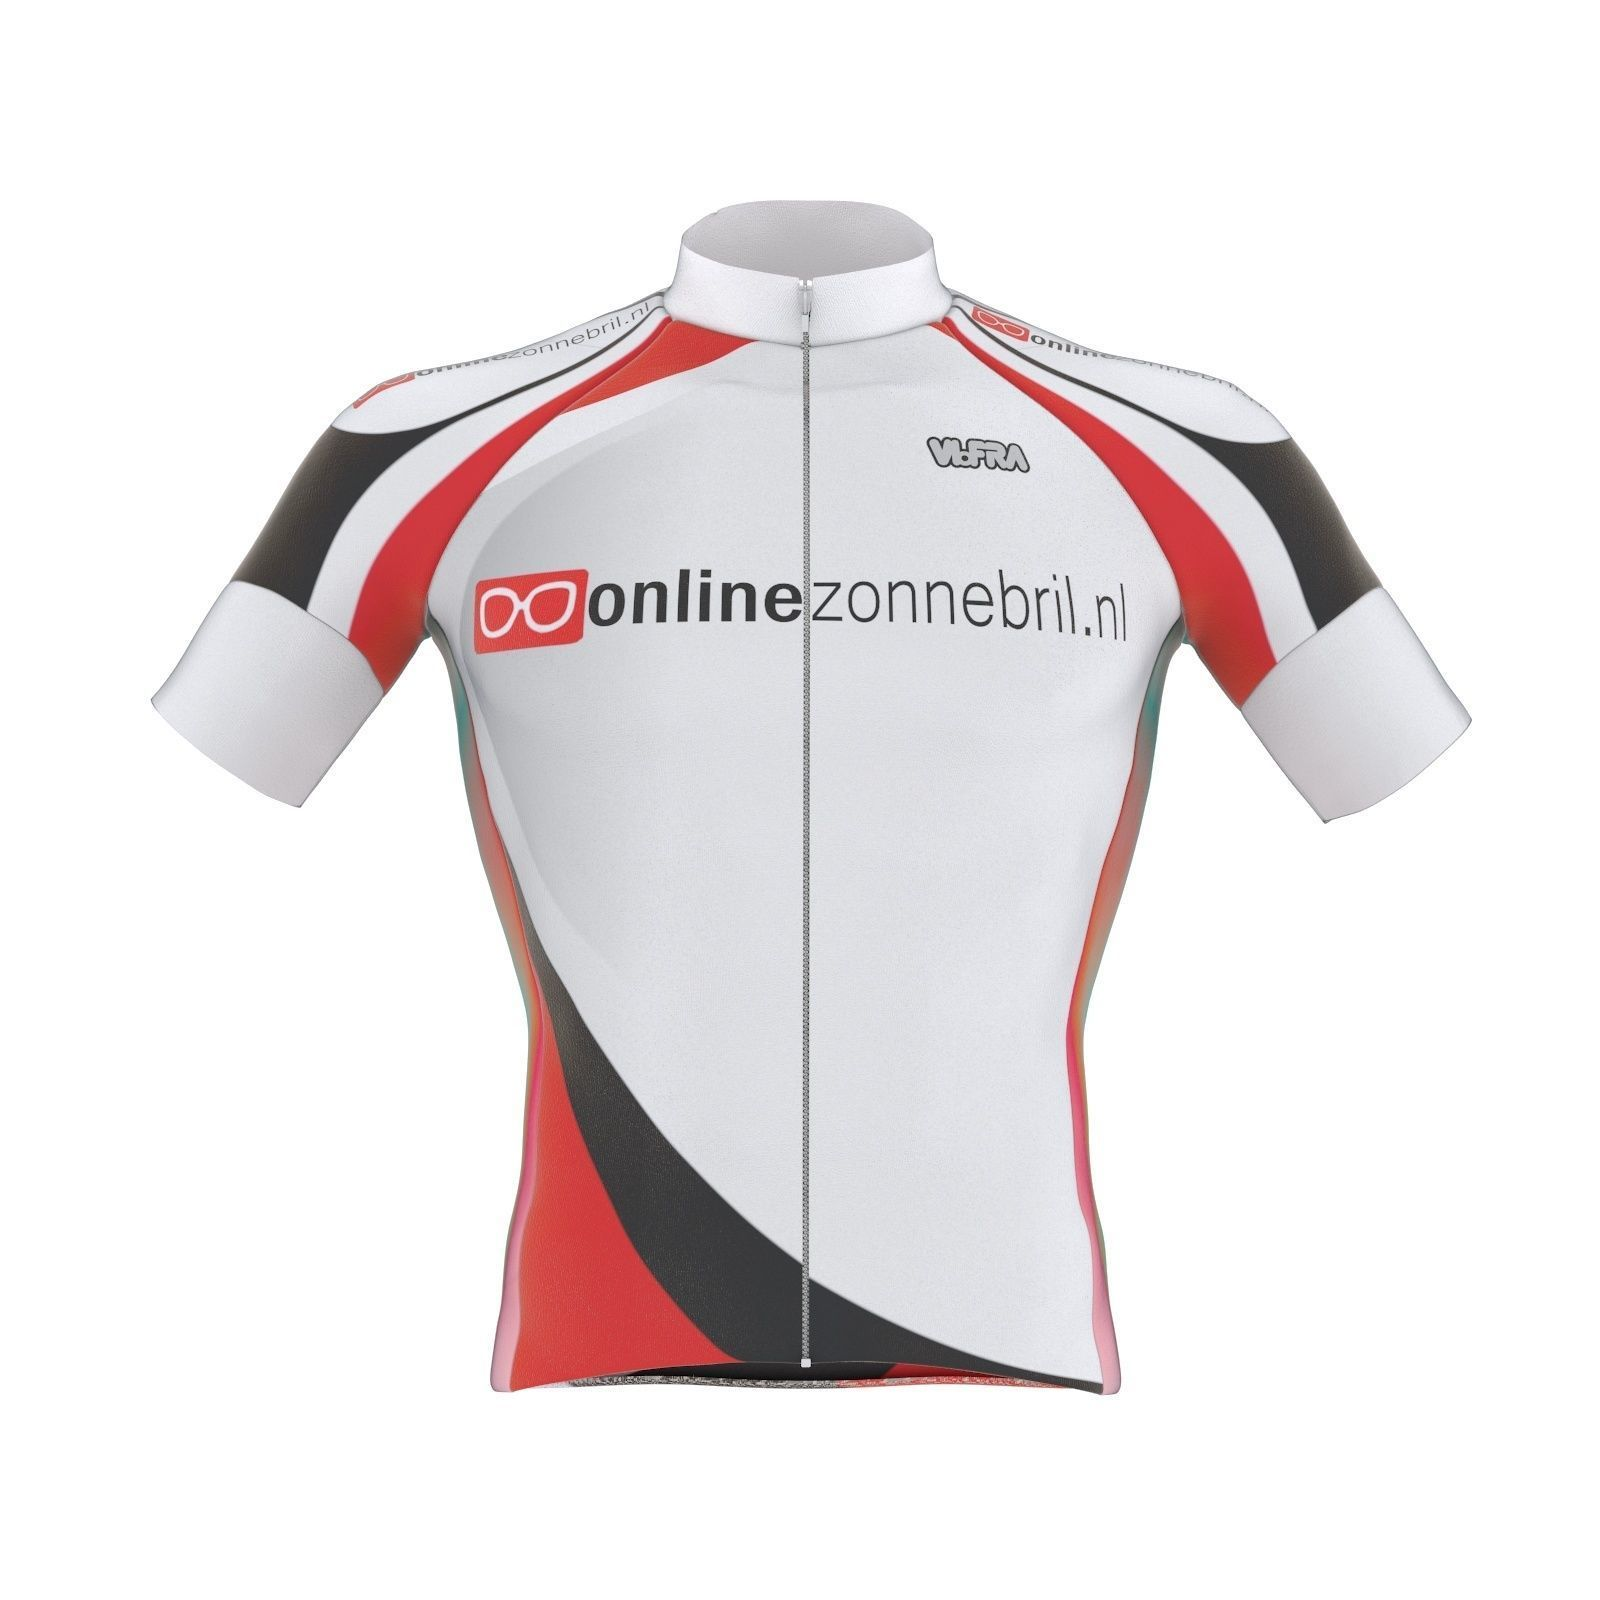 Cyclist bib t shirt